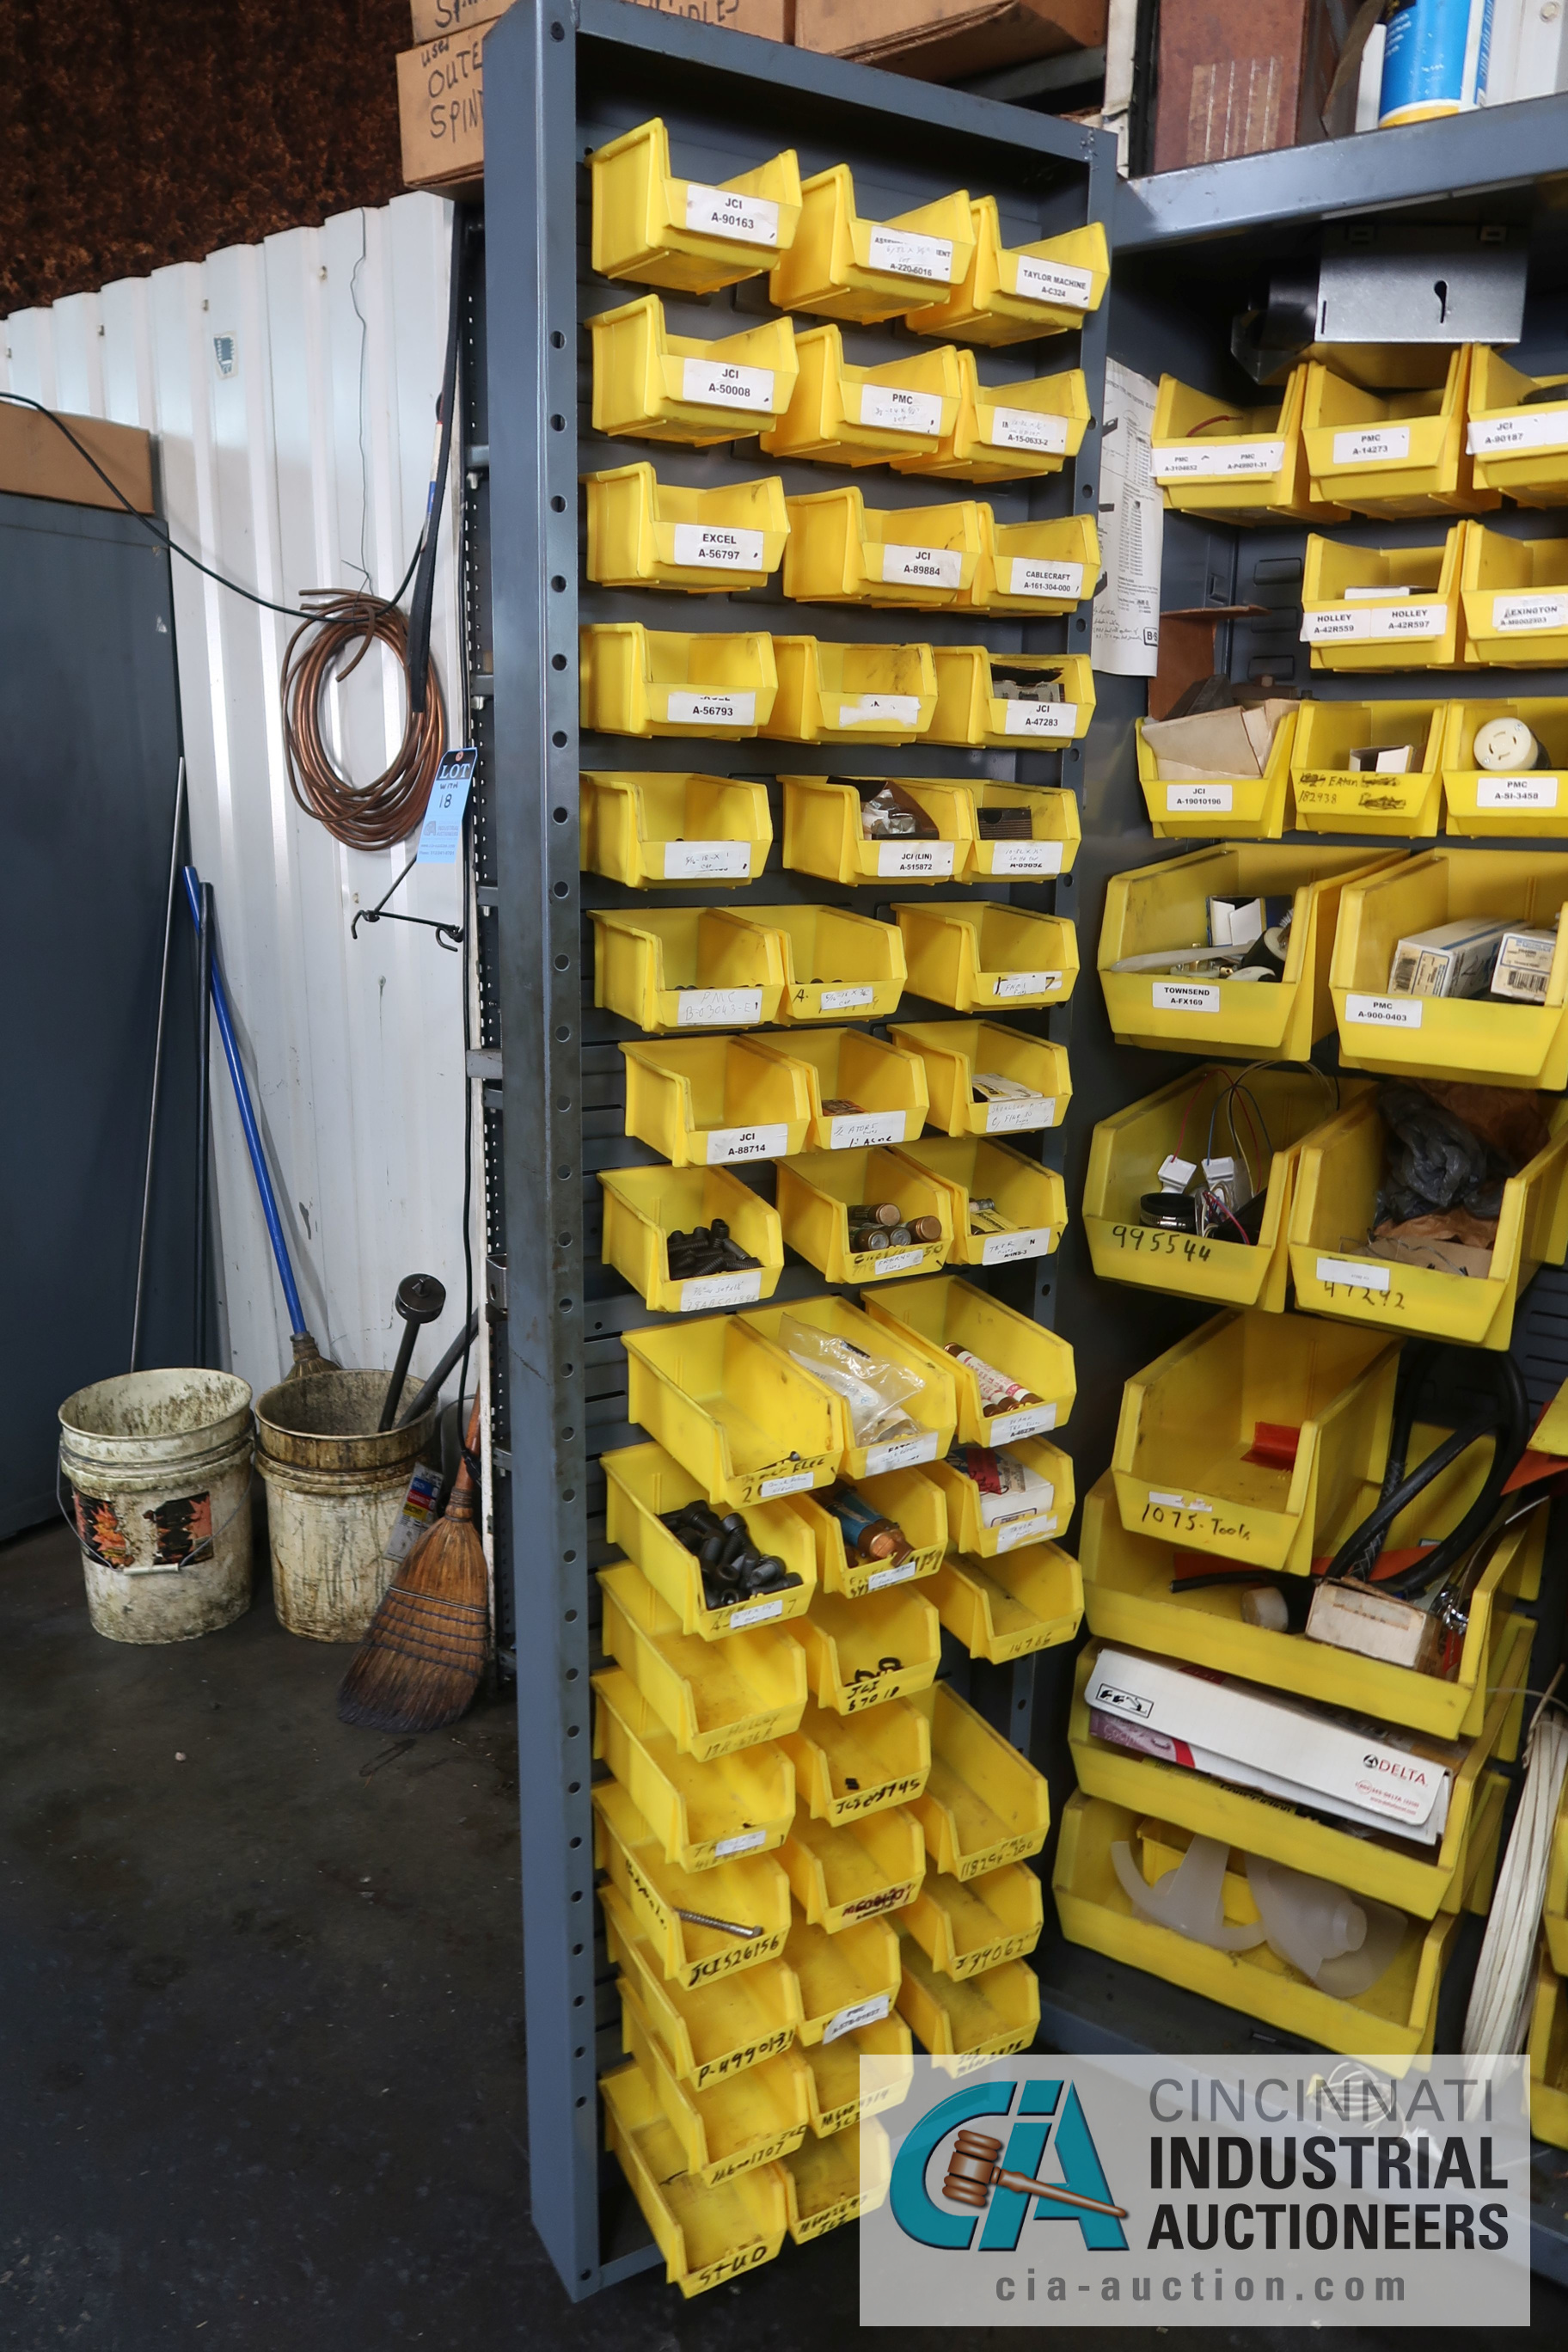 (LOT) MISCELLANEOUS ELECTRICAL AND HARDWARE WITH TWO-DOOR STRONGHOLD STYLE BIN CABINET - Image 5 of 5